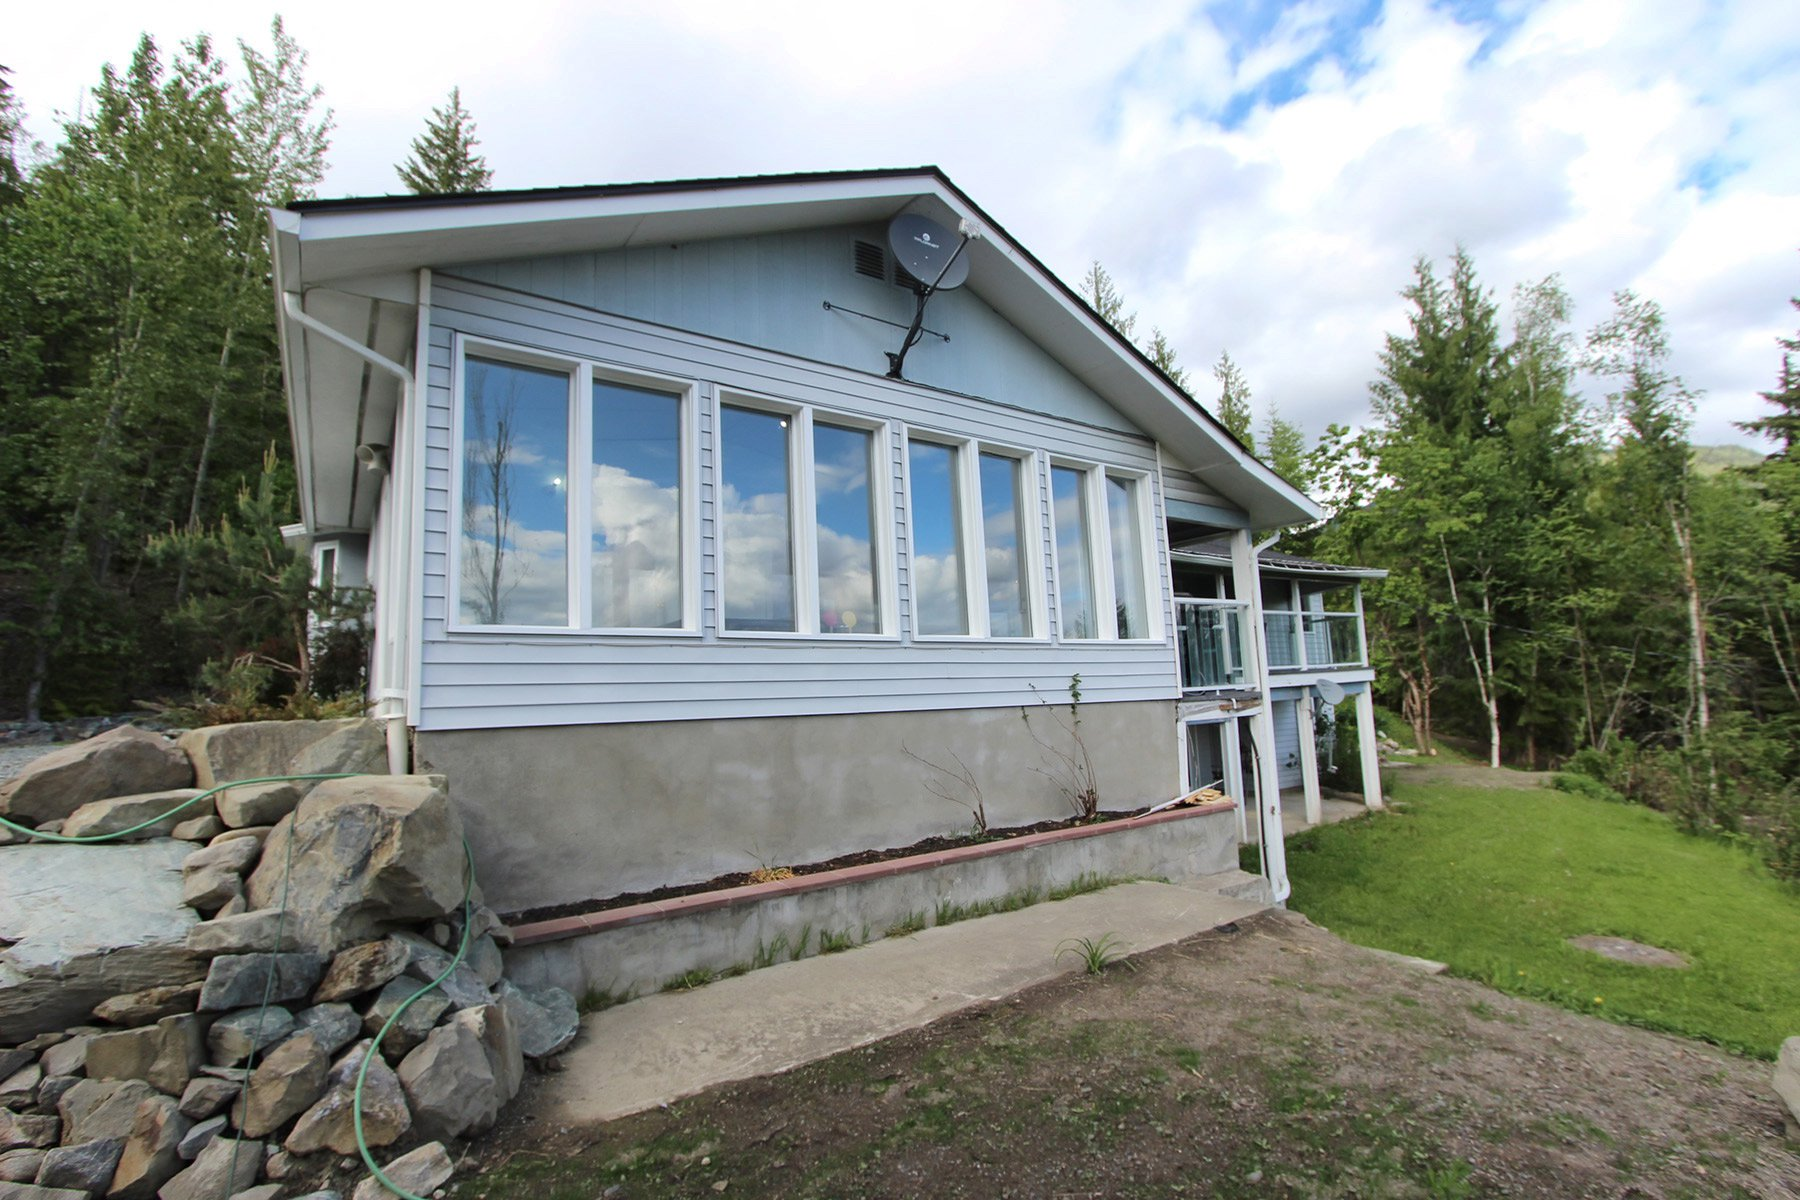 Photo 11: Photos: 6831 Magna Bay Drive in Magna Bay: House with Acreage for sale : MLS®# 10205520